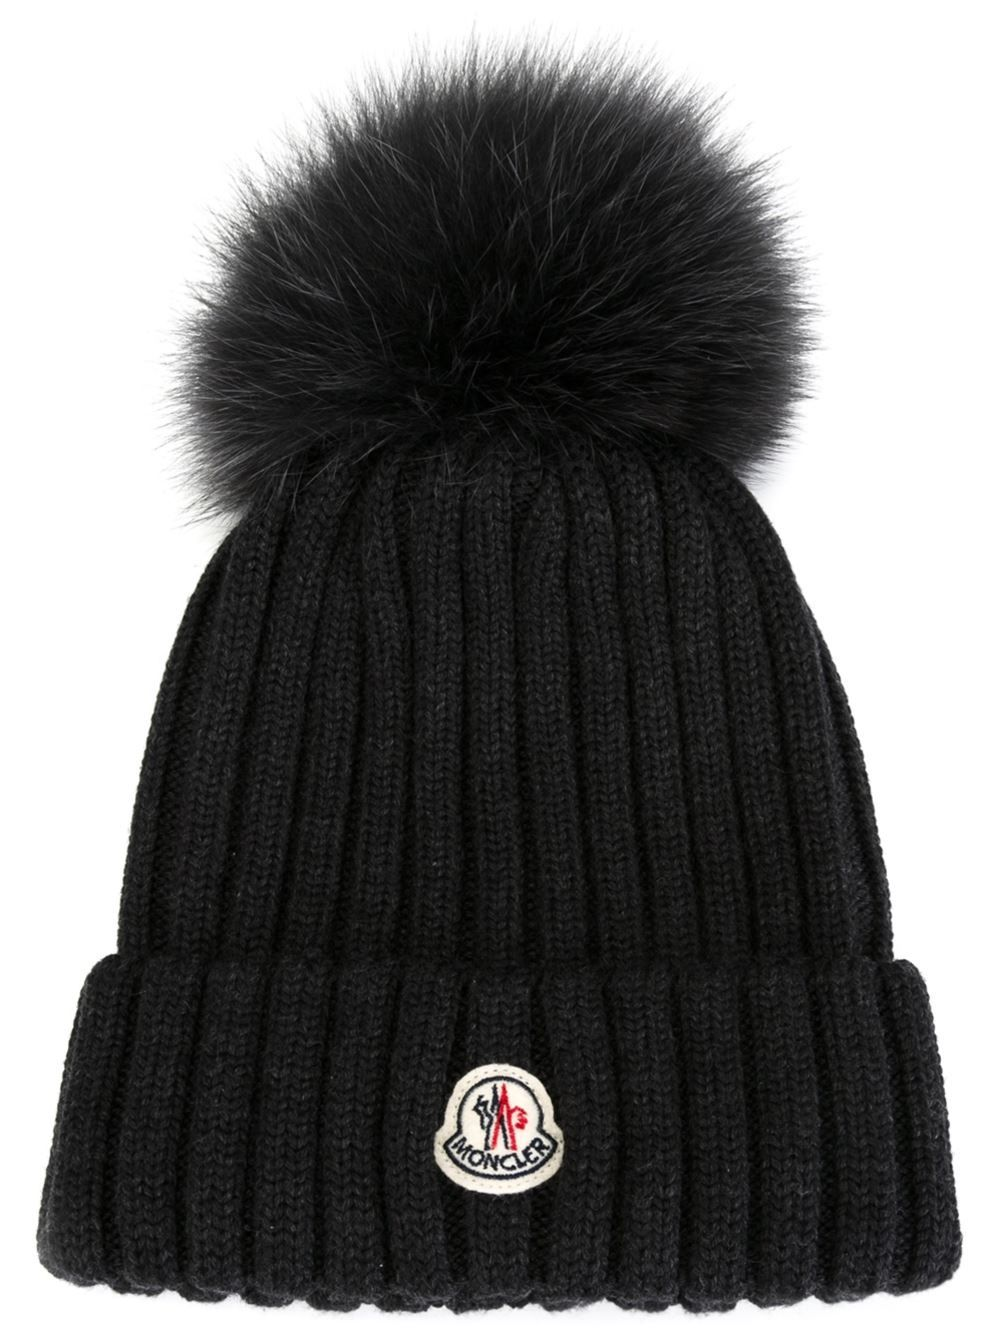 moncler  women  girls  fur  pompom  beanie  grey  hat www.jofre.eu ... 443c9e71044